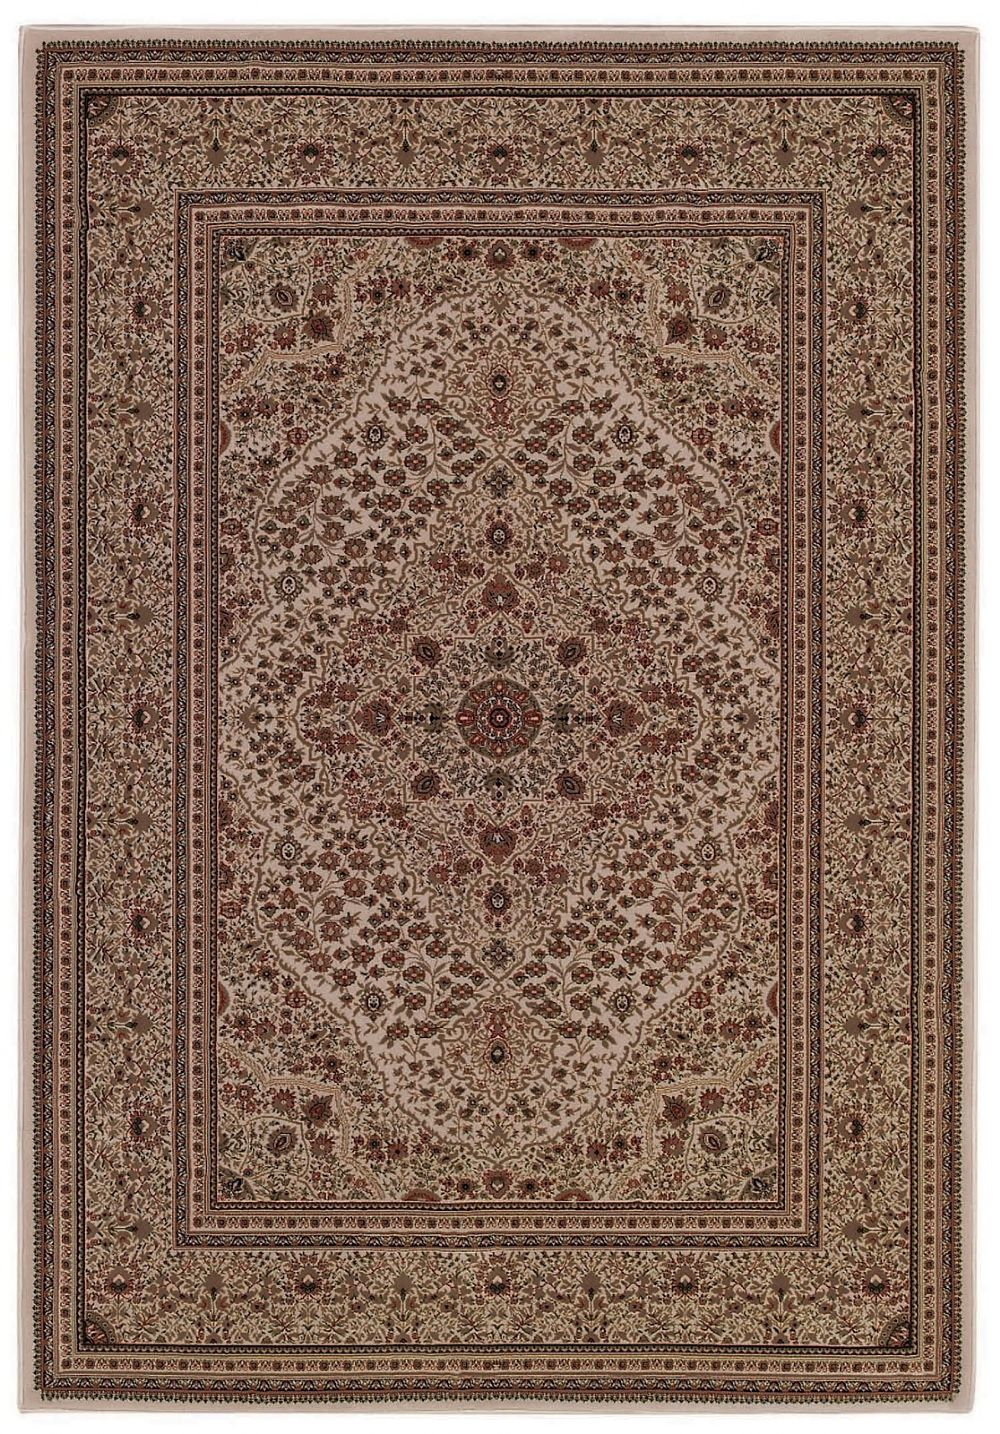 capel belmont-kashan european area rug collection